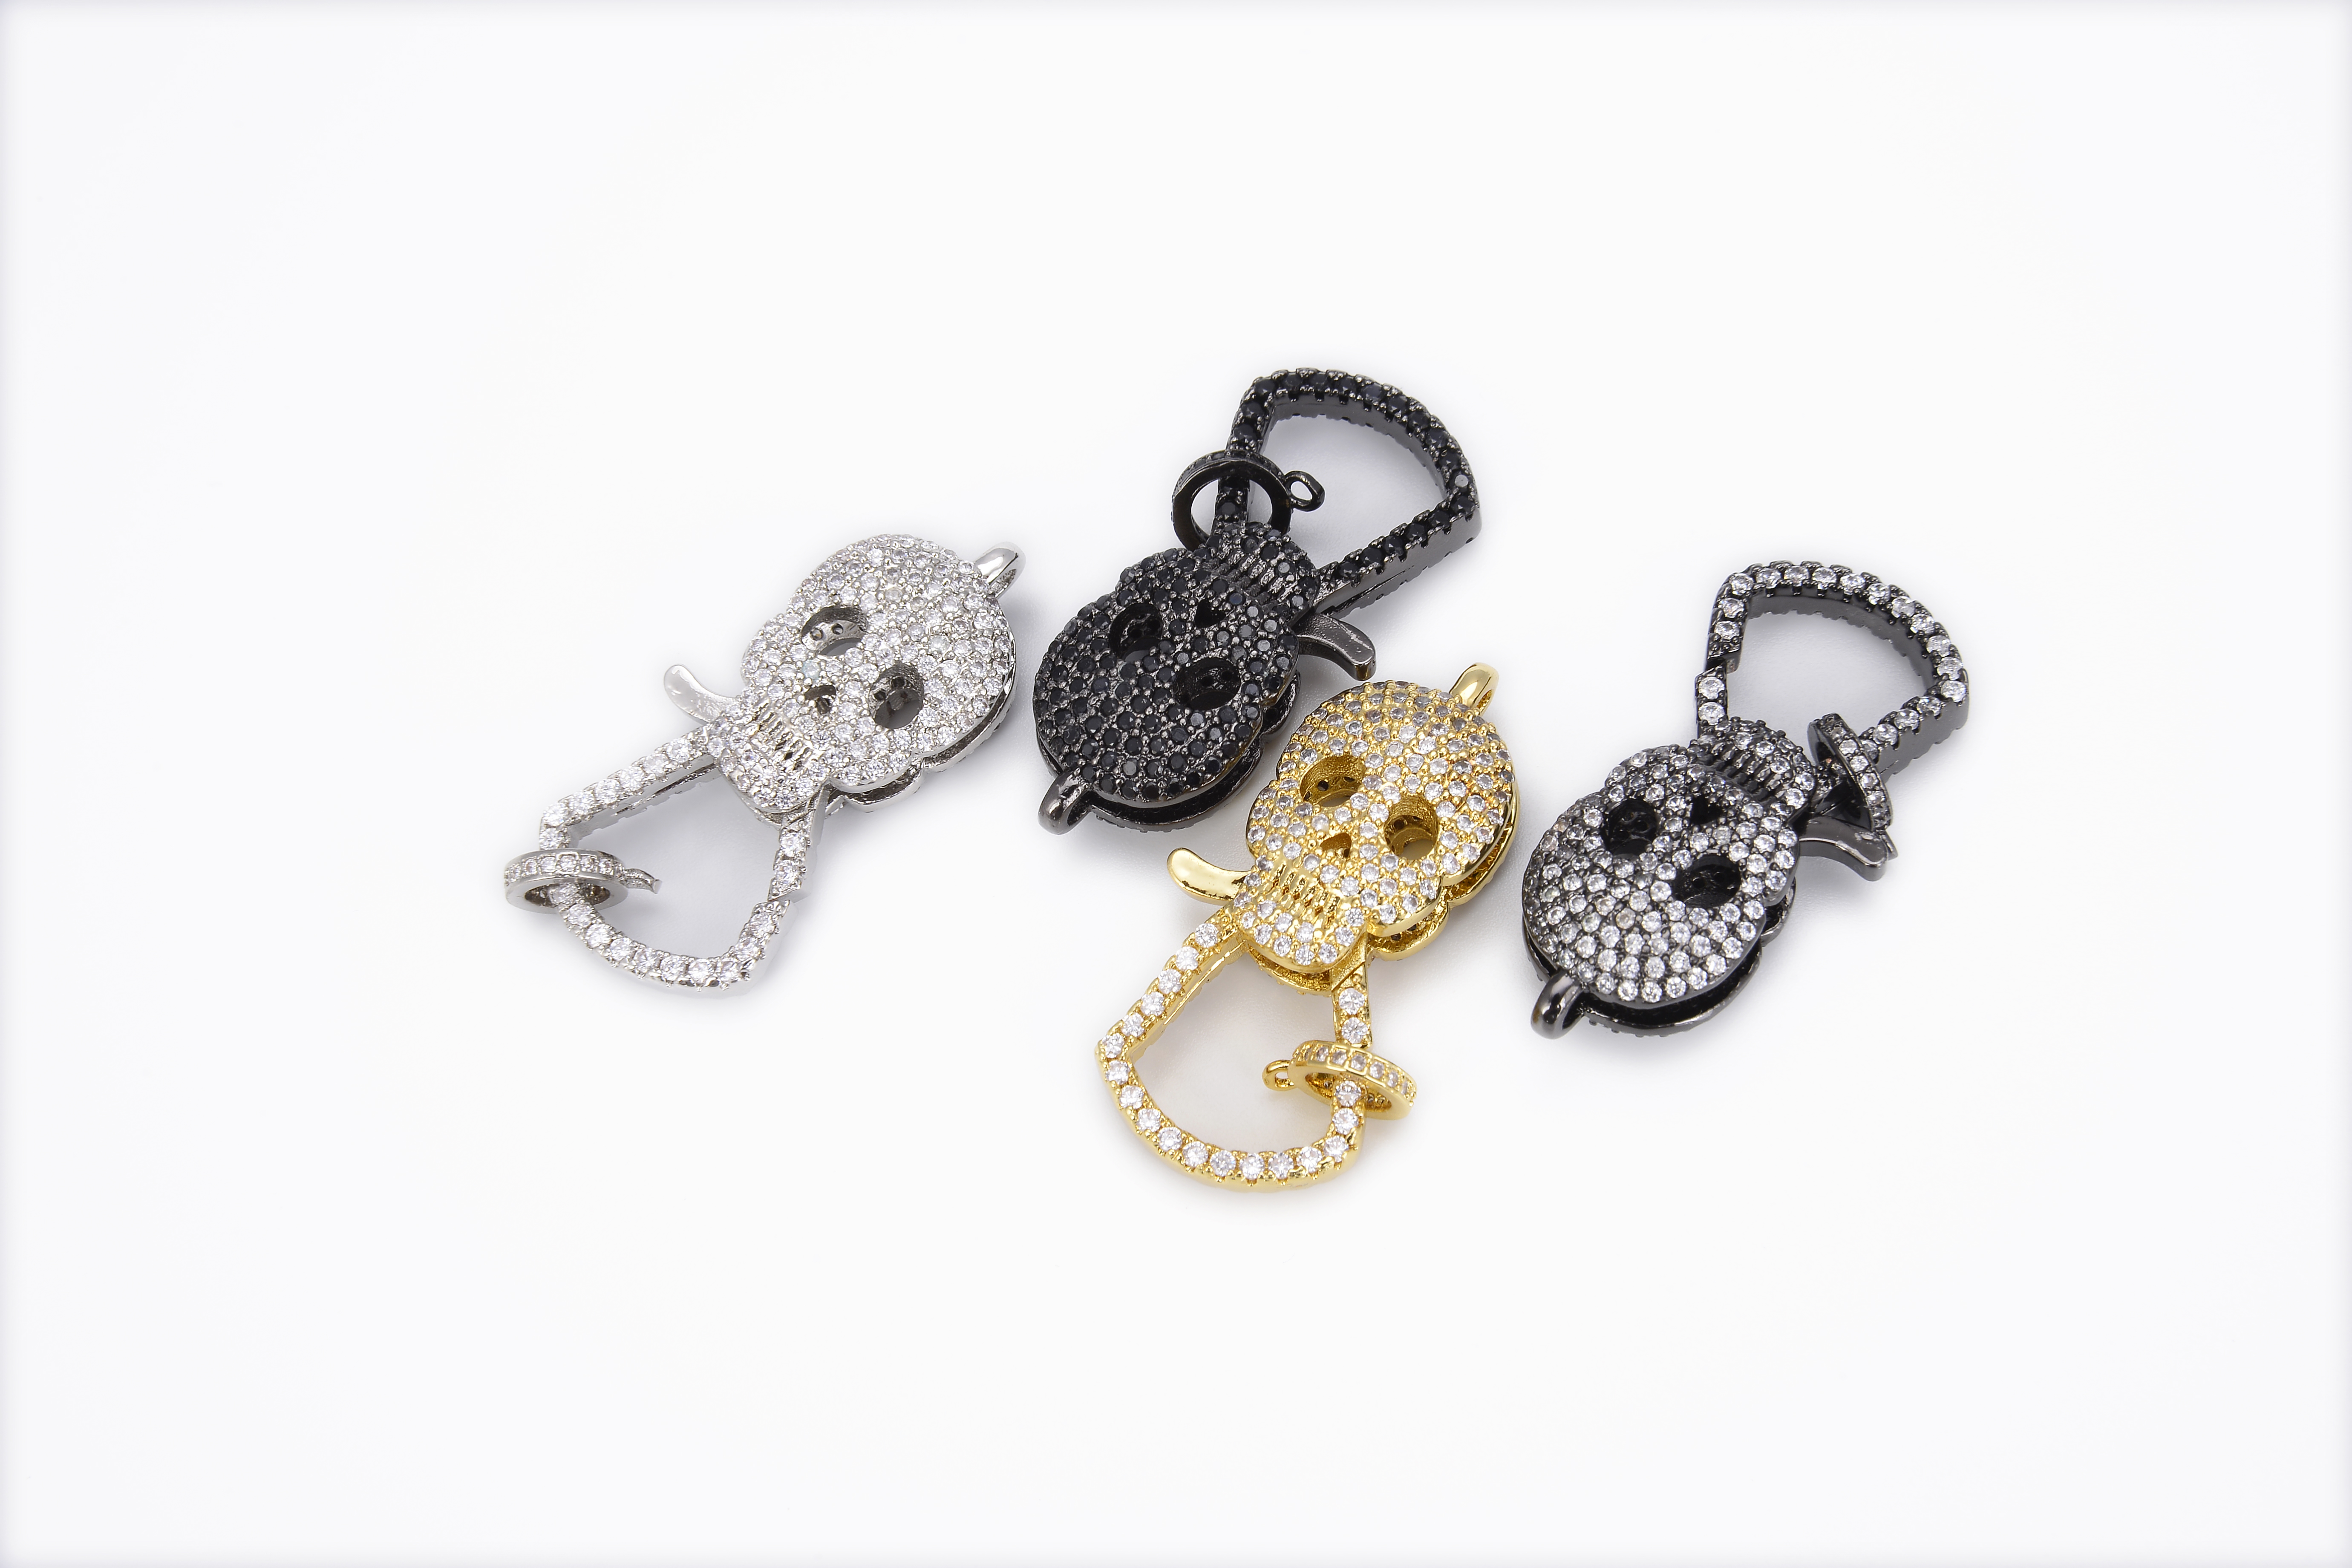 1 pc perfect for Jewelry making. 21mmx14mm CZ Micro Pave Lobster Clasp